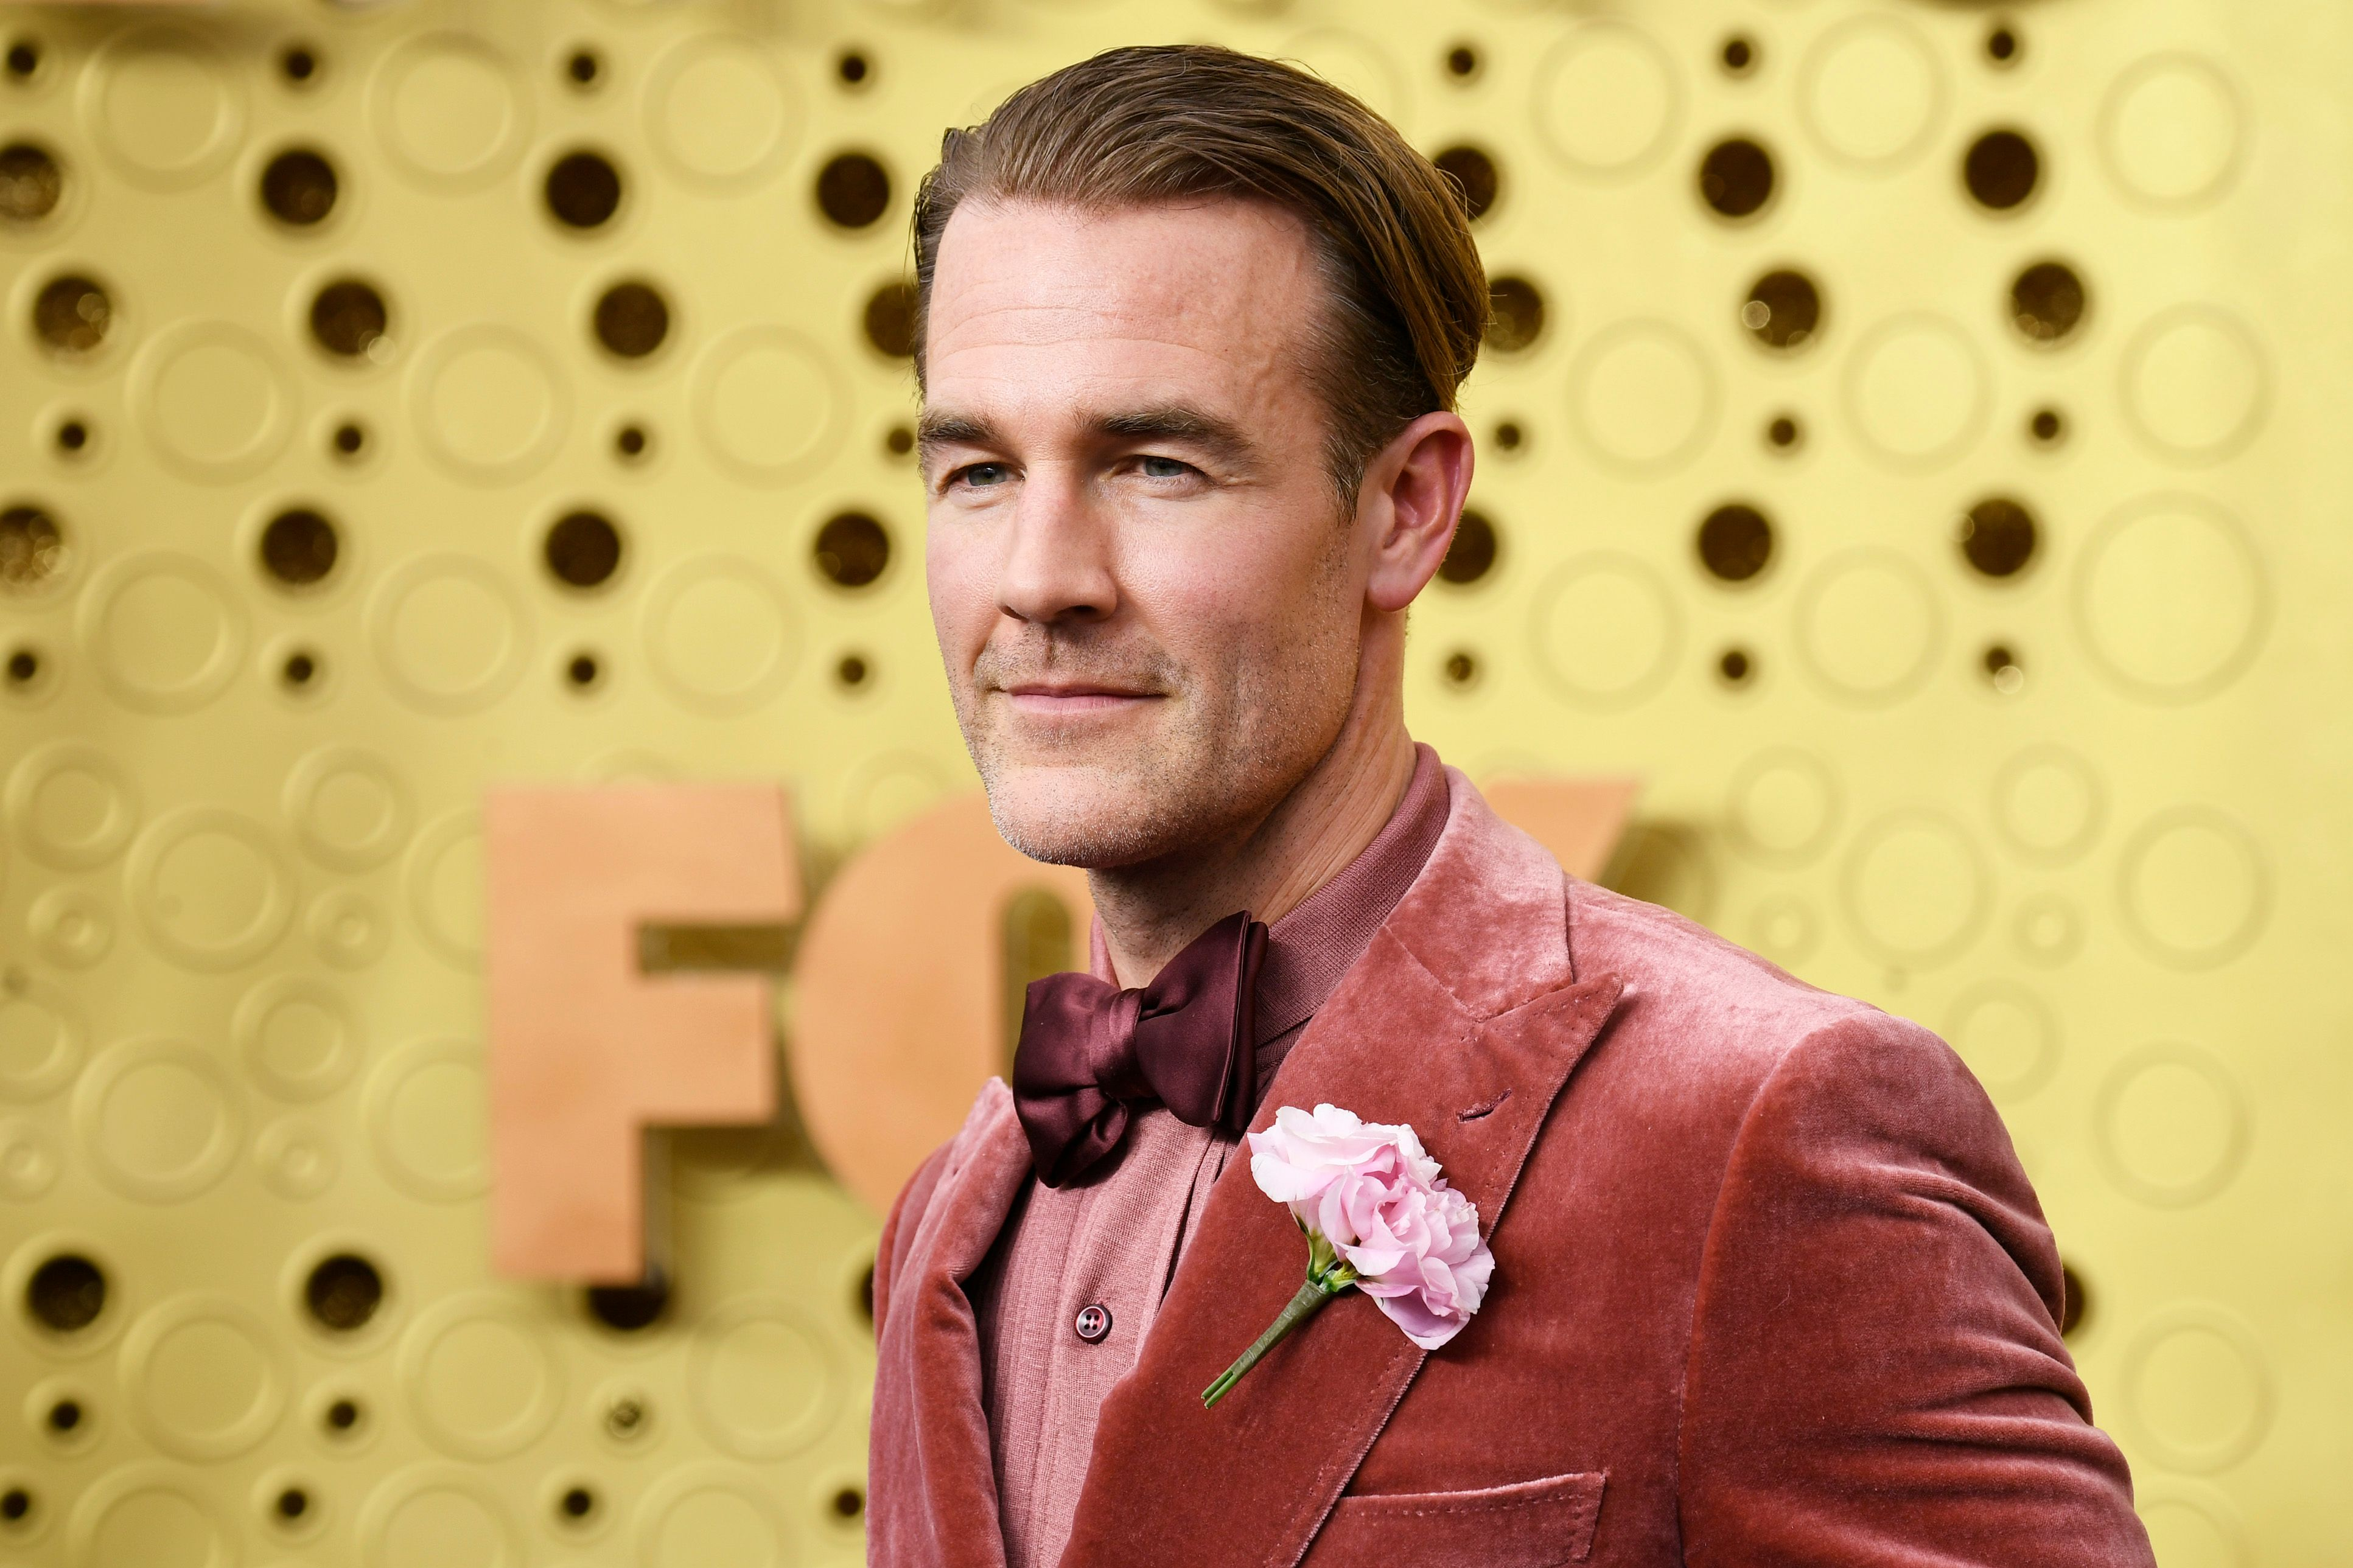 James Van Der Beek at the 71st Emmy Awards at Microsoft Theater on September 22, 2019 in Los Angeles, California. | Photo: Getty Images